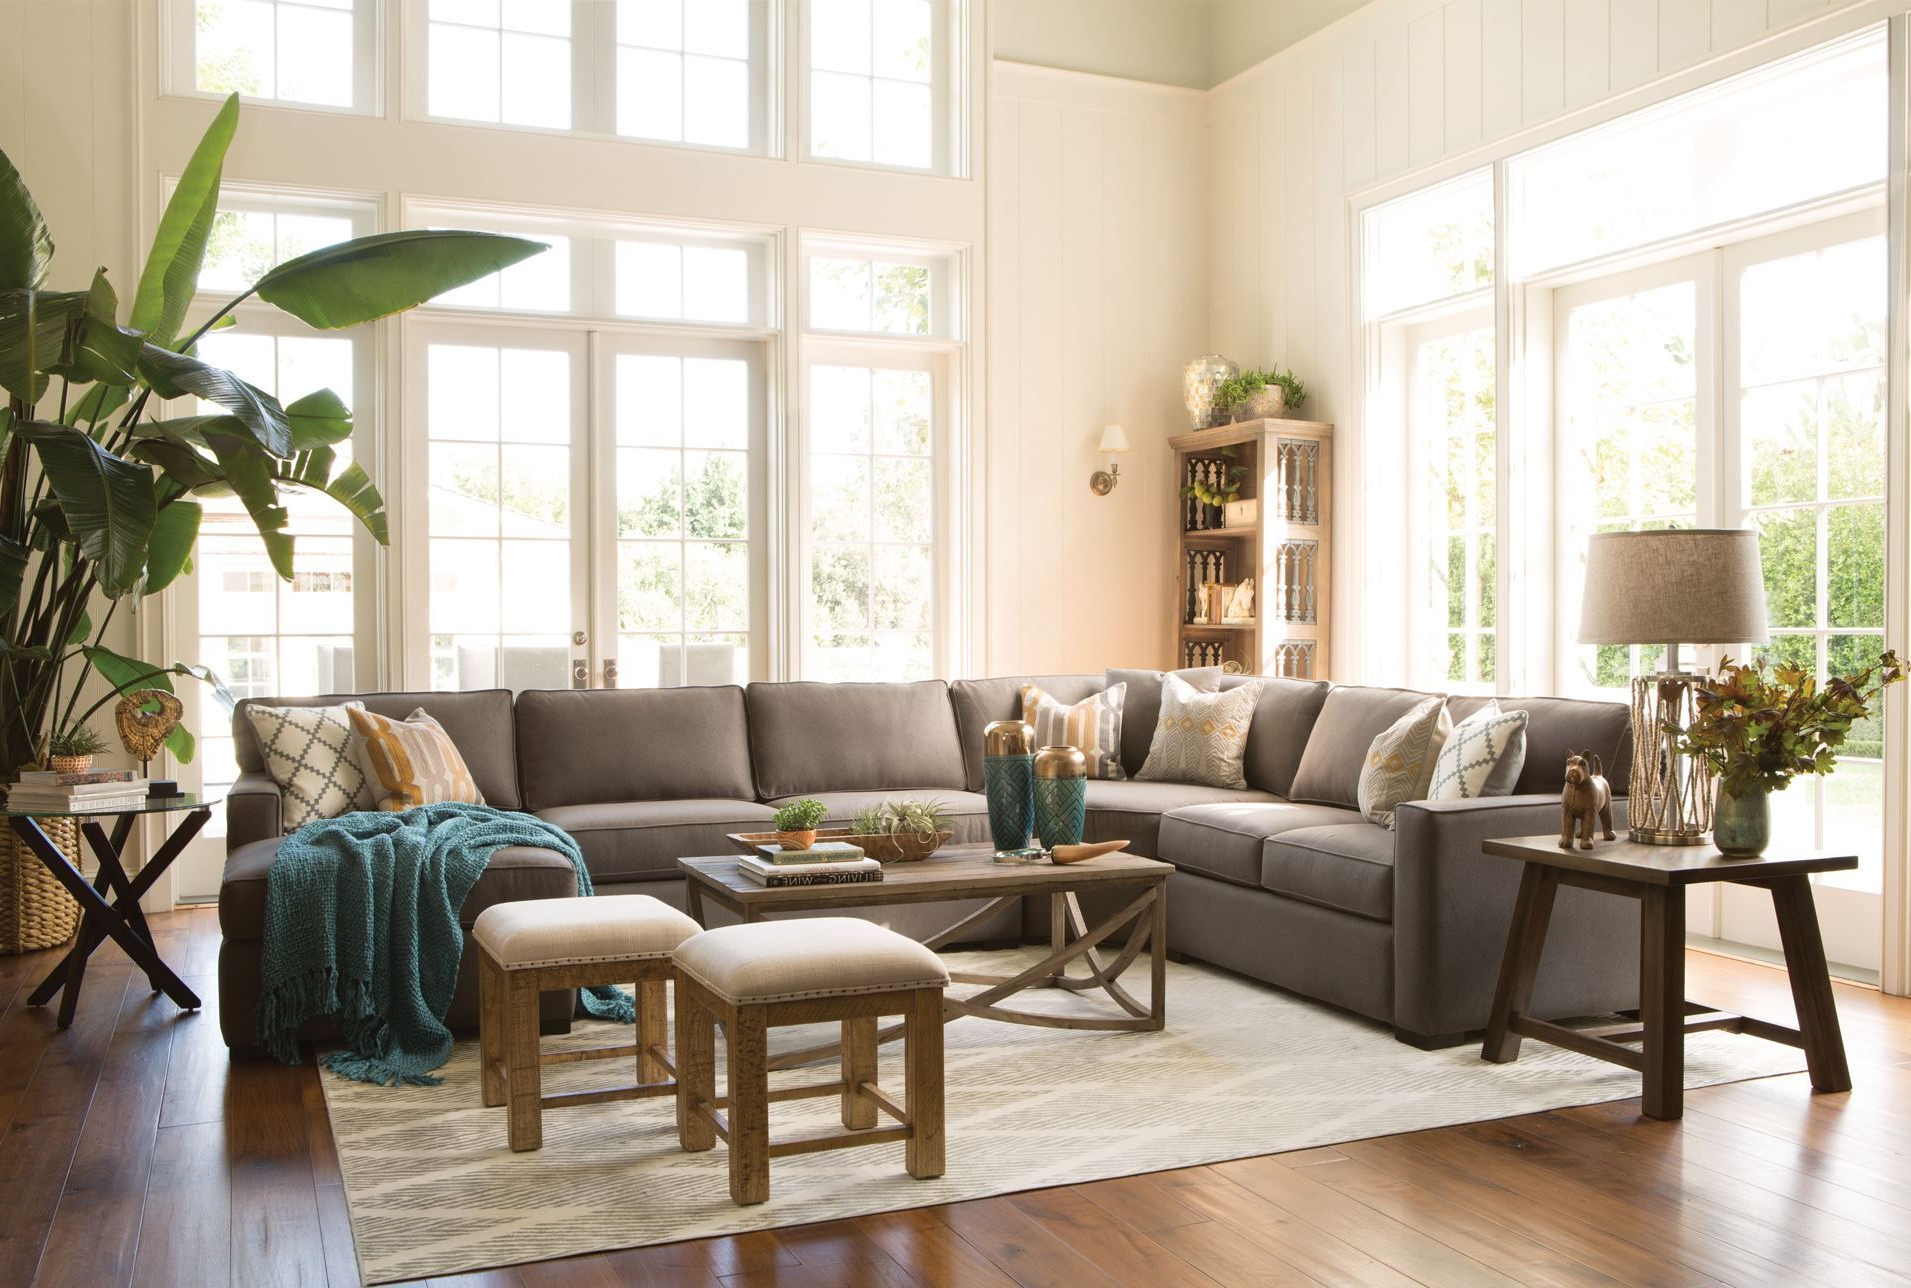 2019 Alder 4 Piece Sectionals Pertaining To Alder 4 Piece Sectional In 2018 (Gallery 3 of 20)